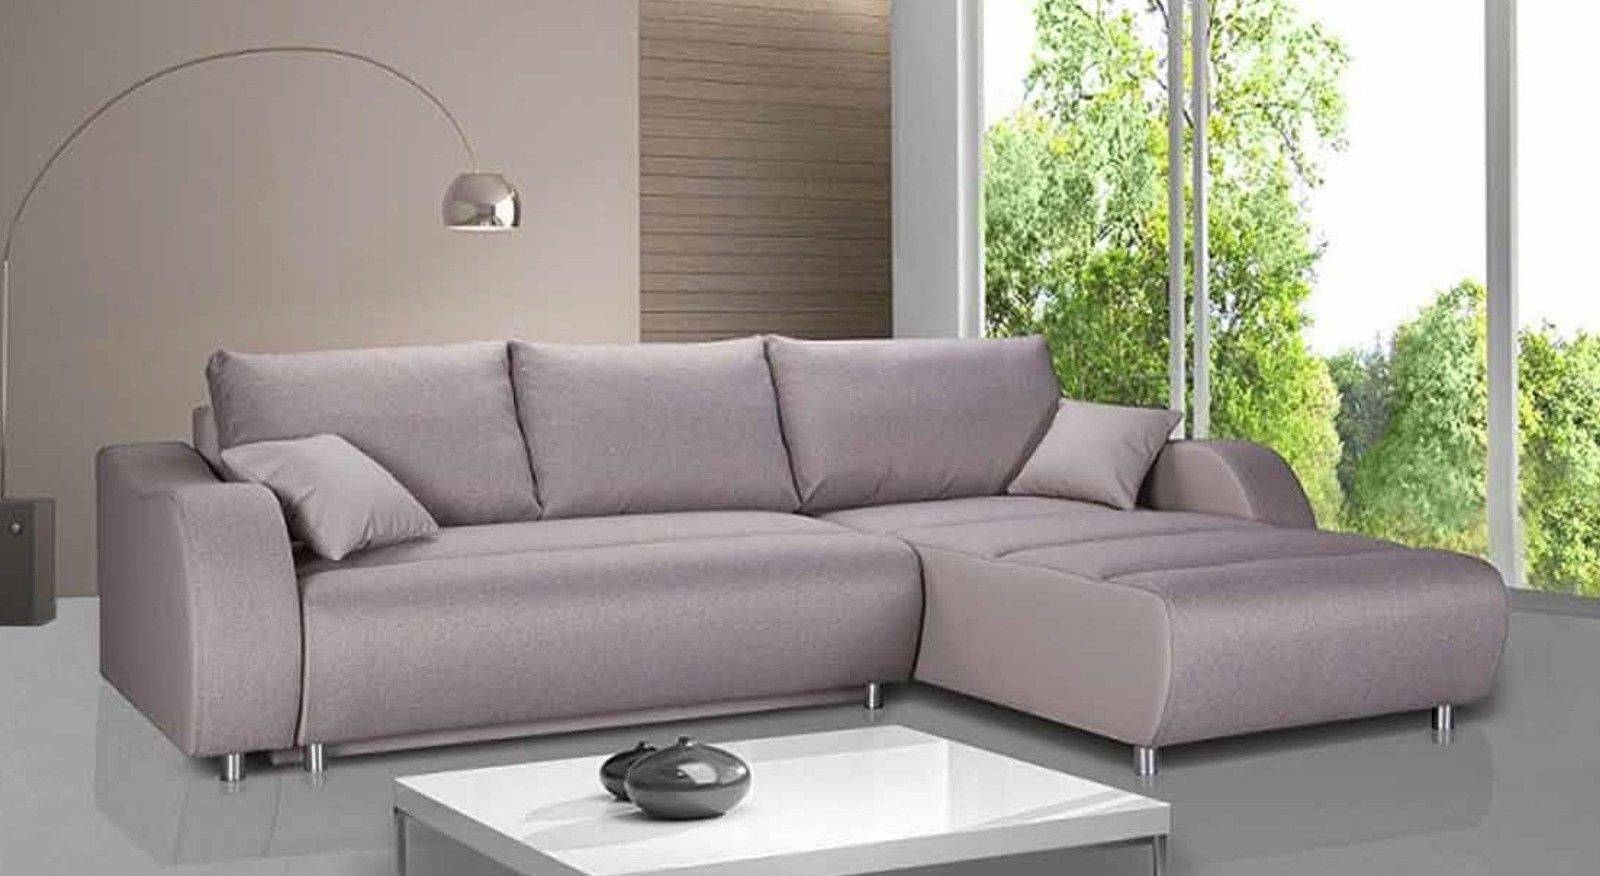 Corner Sofa Fabric. Gray Corner Sofa Fabric Modern Sofas with regard to Cheap Corner Sofa (Image 11 of 30)